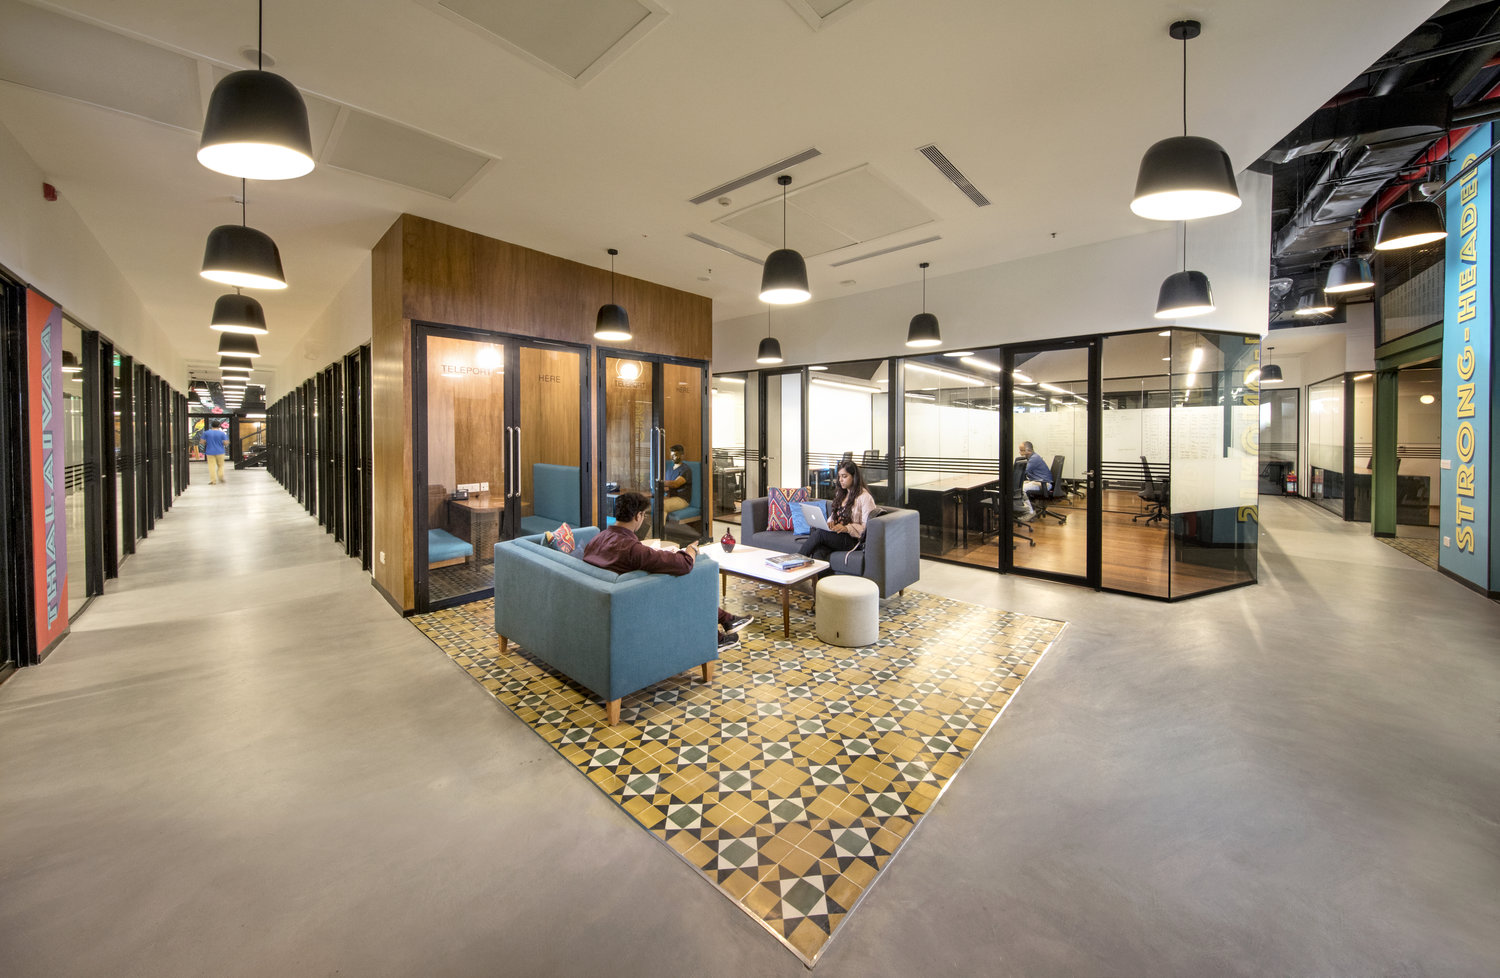 Shared Office in Chennai | Private Office Space in Chennai | The Hive  Workspaces